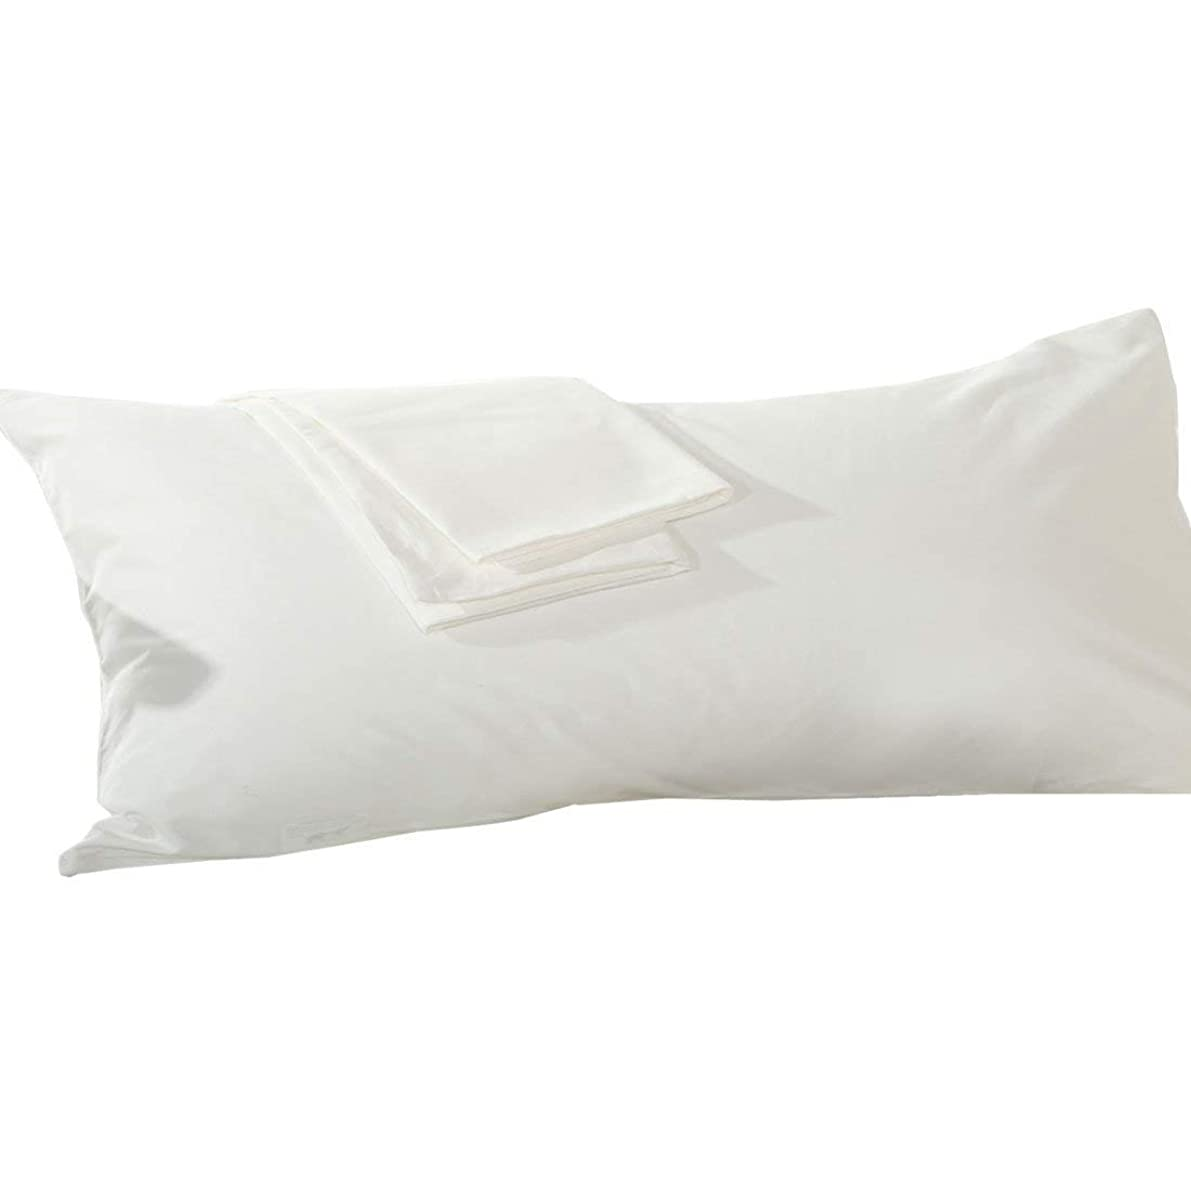 rahoo Body Pillowcase 20x54 Set of 1 Body Pillow Cover with Zipper Closer 500 Thread Count 100% Egyptian Cotton White Solid 20 x 54 Body Pillowcases